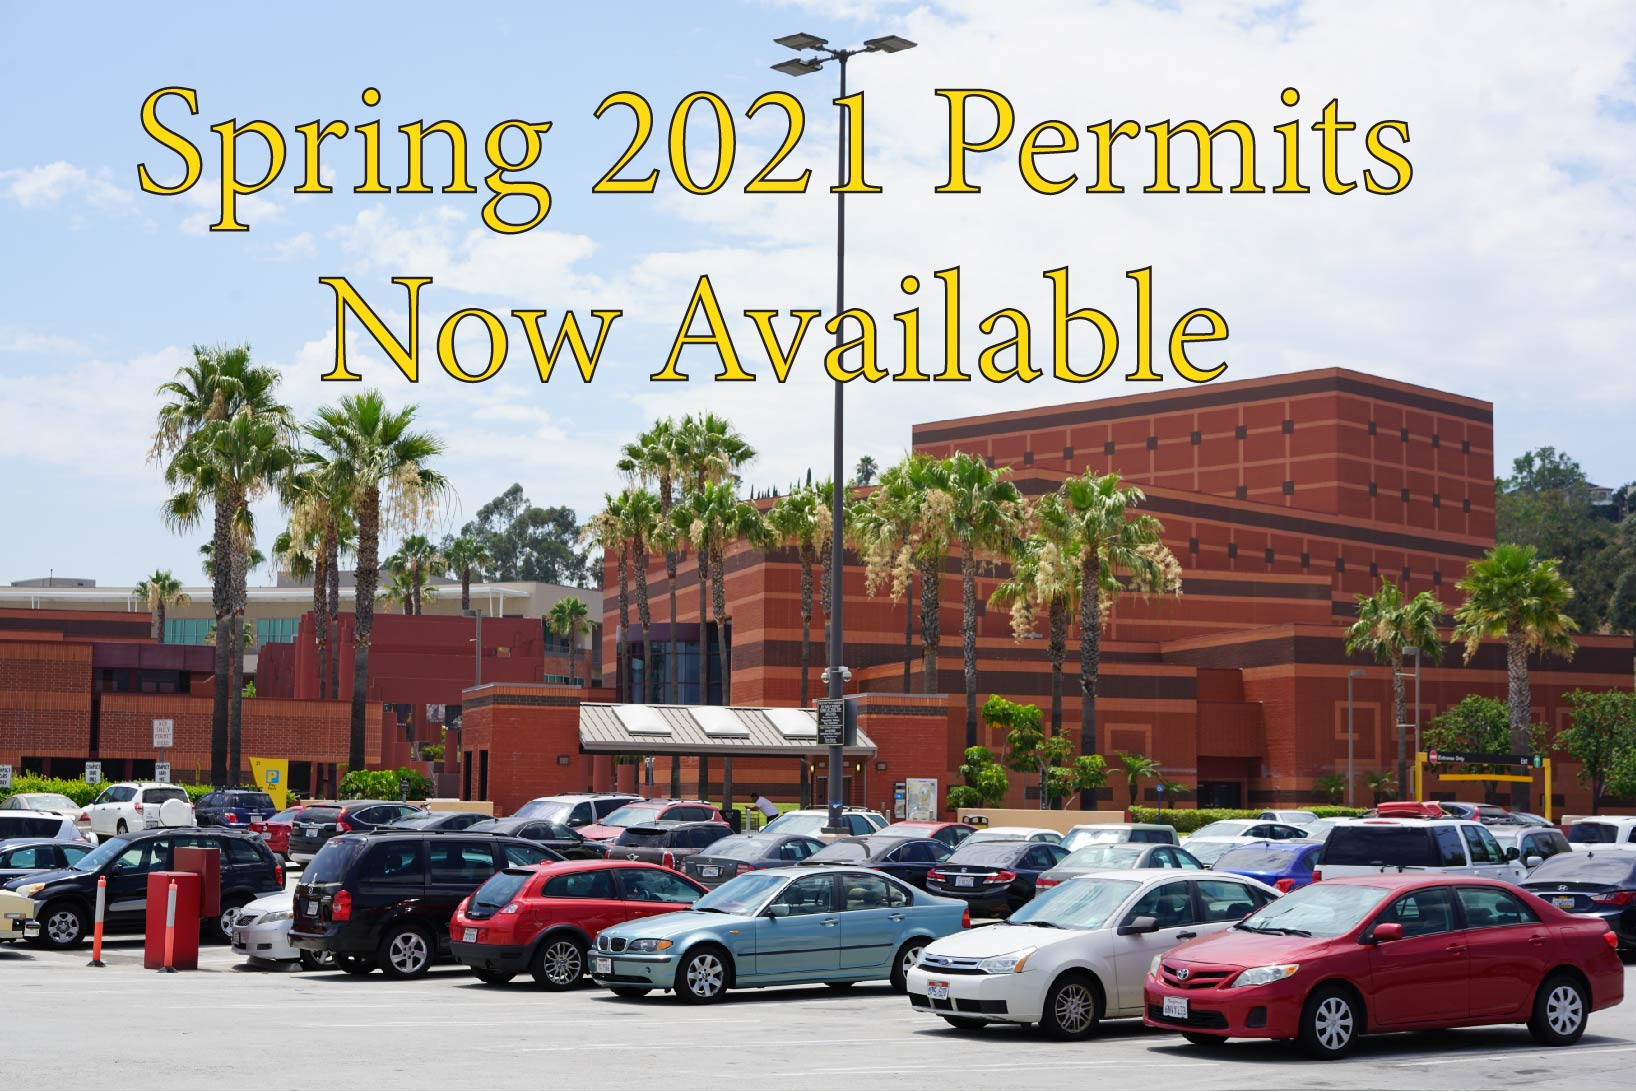 Cal State LA Spring 2021 permits now available.